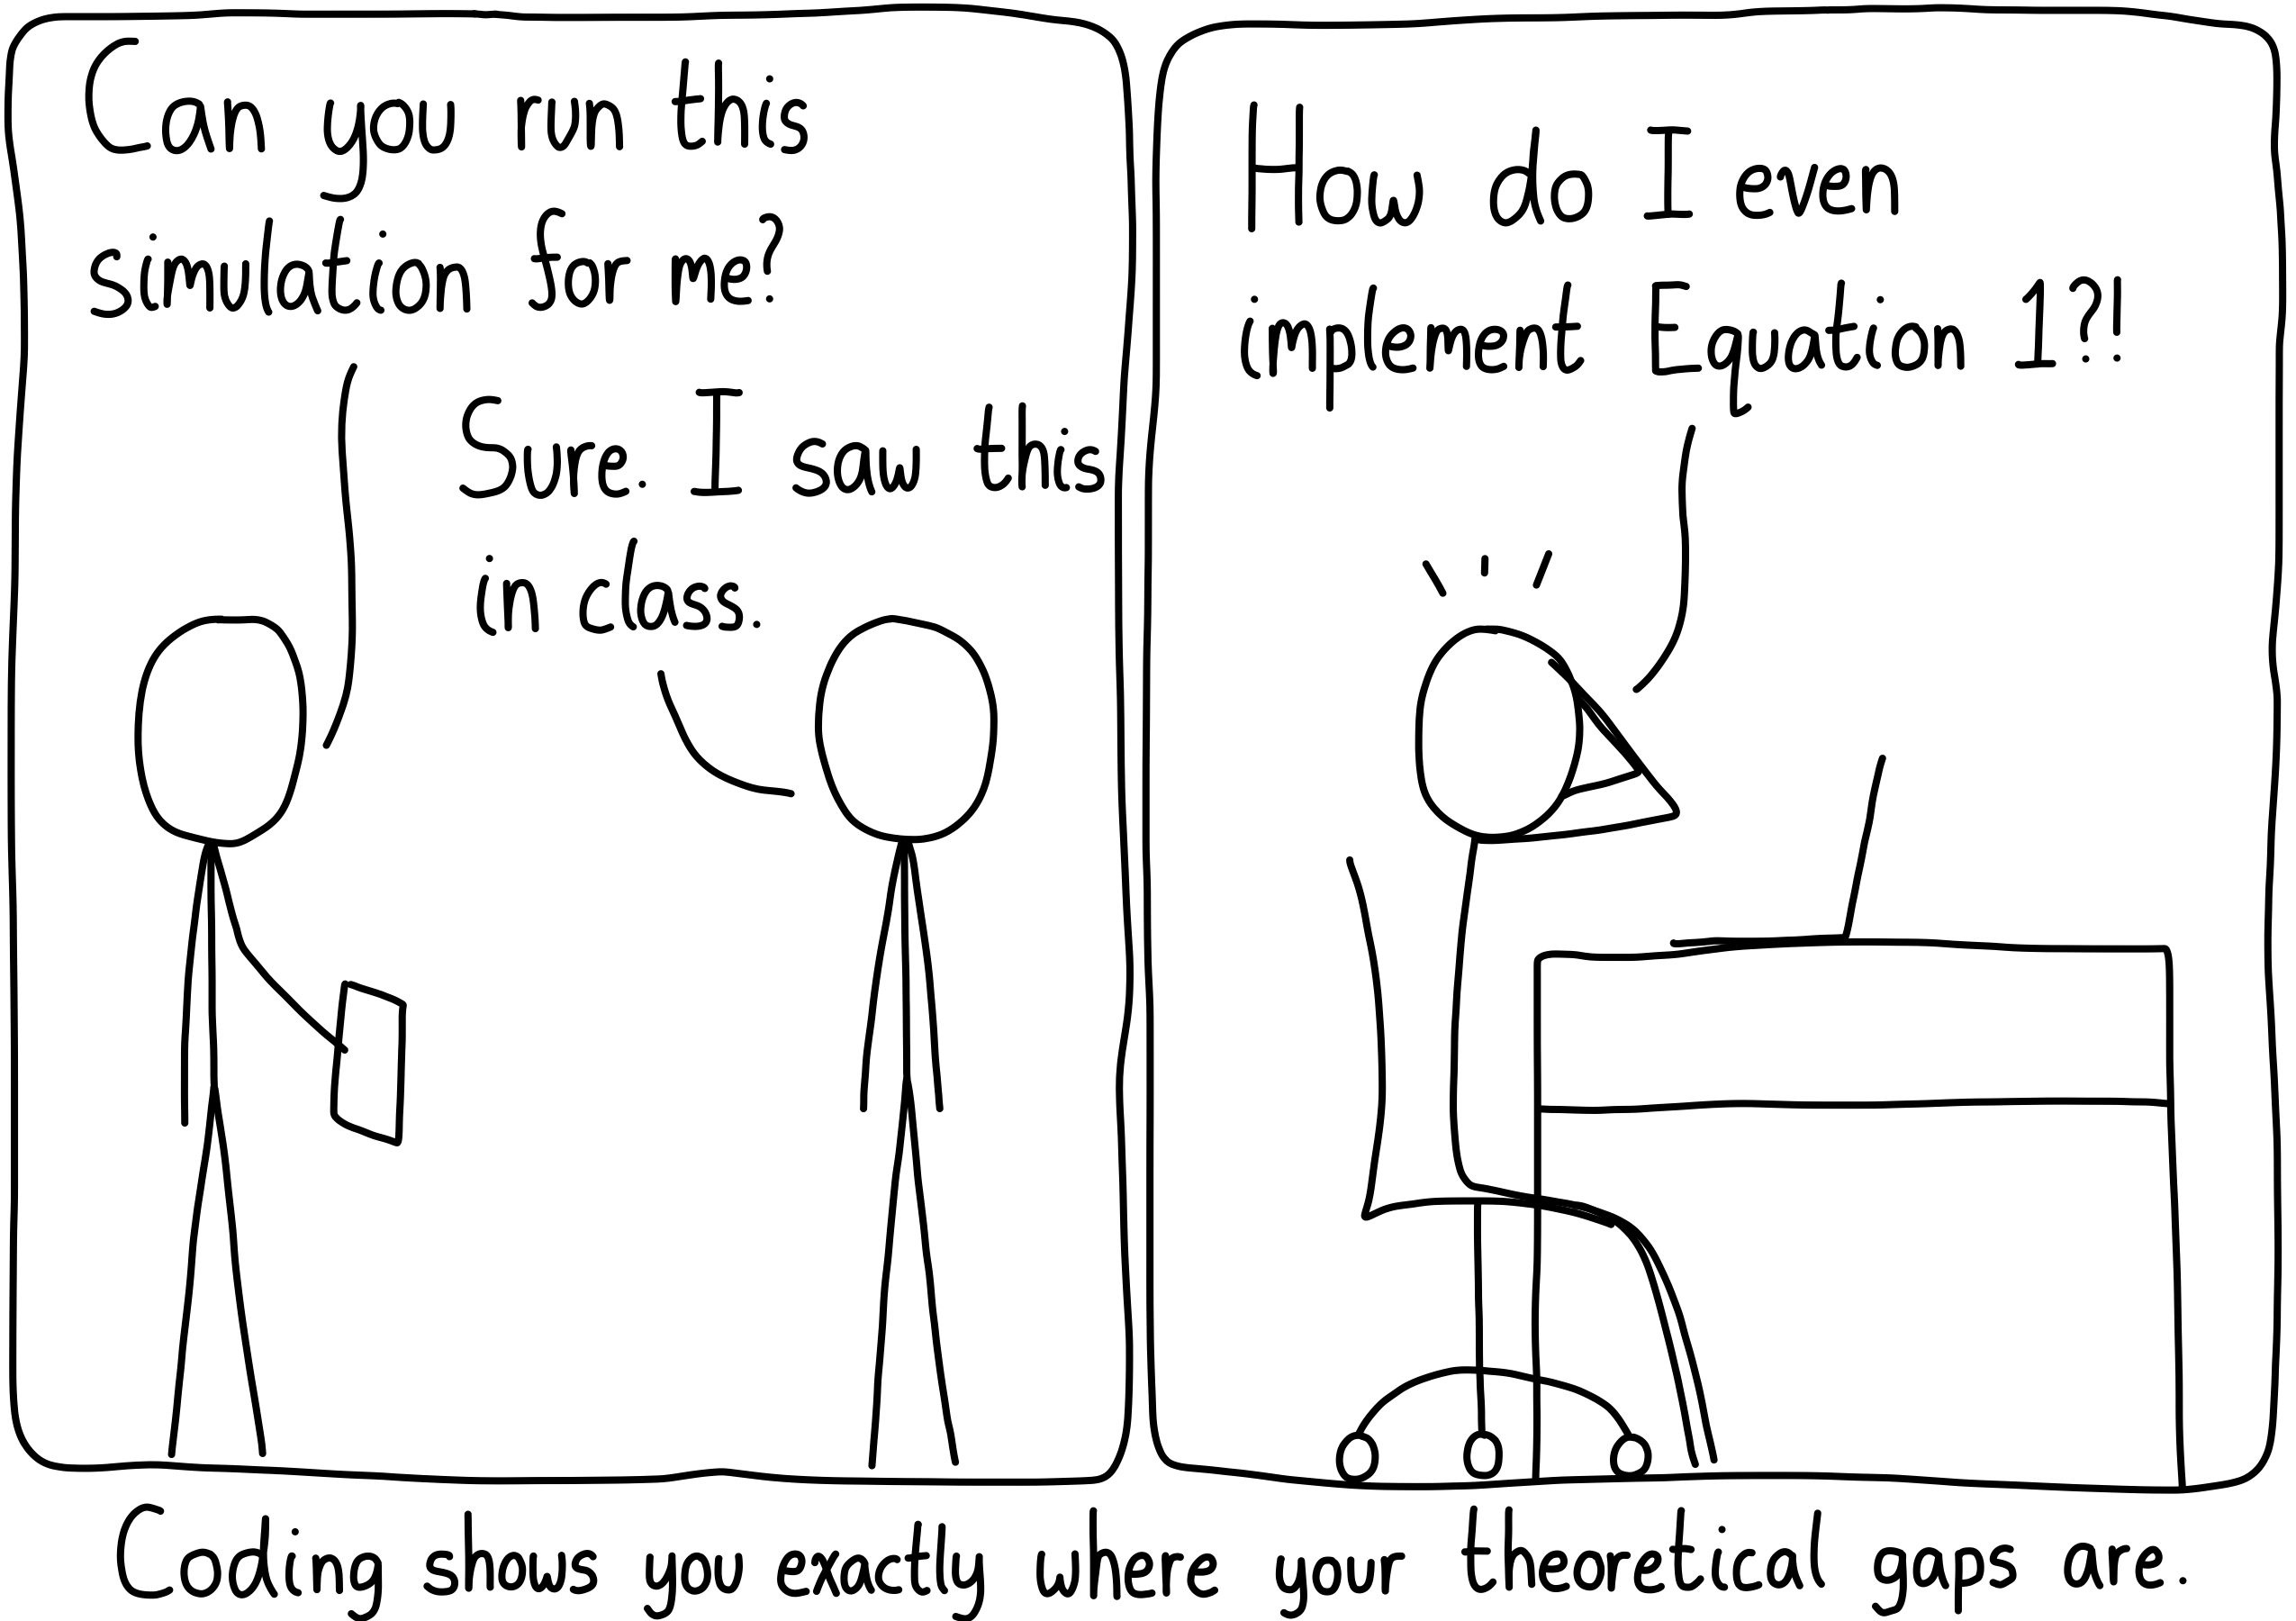 """Left panel: """"Can you run this simulation for me?"""" """"Sure, I saw this in class."""" Right panel: (Later) """"How do I even implement Equation 1?!"""" Caption: Coding shows you exactly where your theoretical gaps lie."""